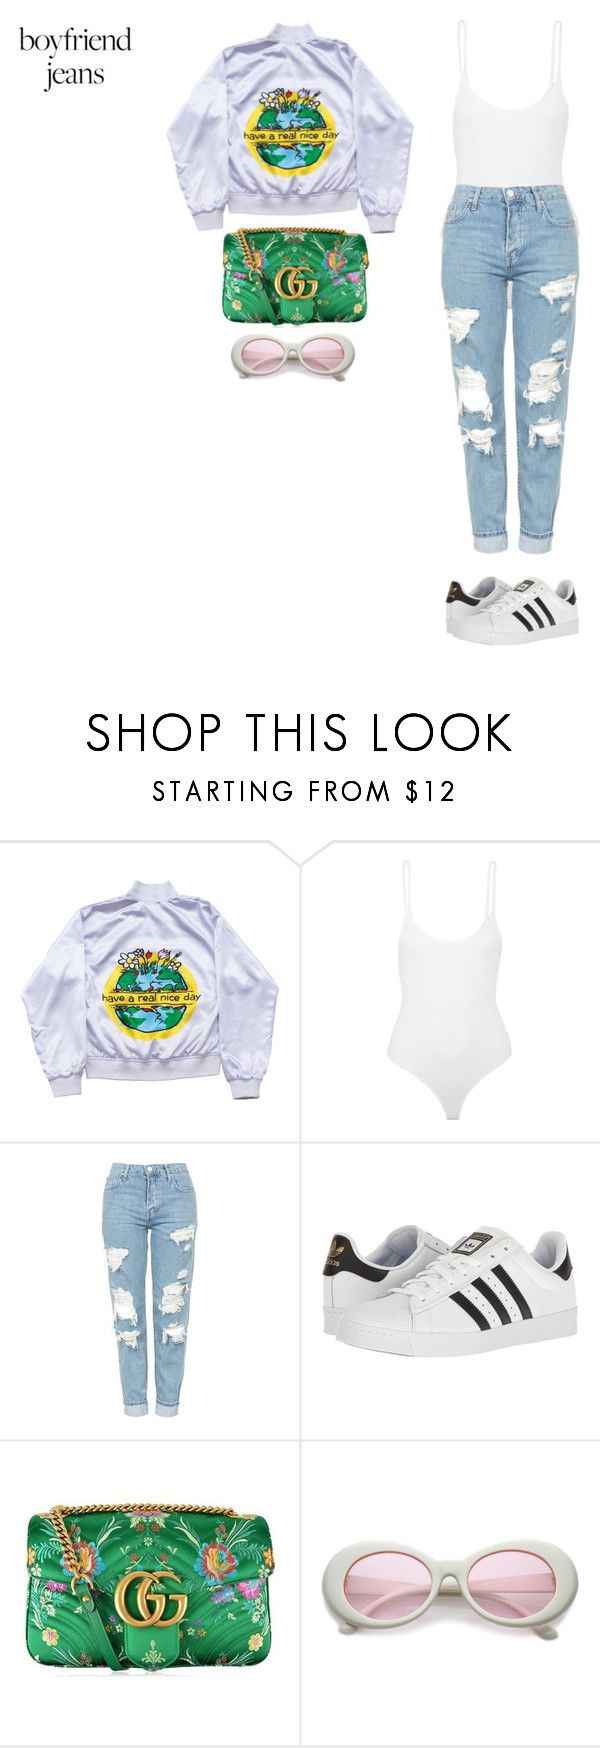 """""""bless the flower that grew from the concrete"""" by xoxotiffvni on Polyvore featuring ATM by Anthony Thomas Melillo, Topshop, adidas, Gucci and boyfriendjeans"""